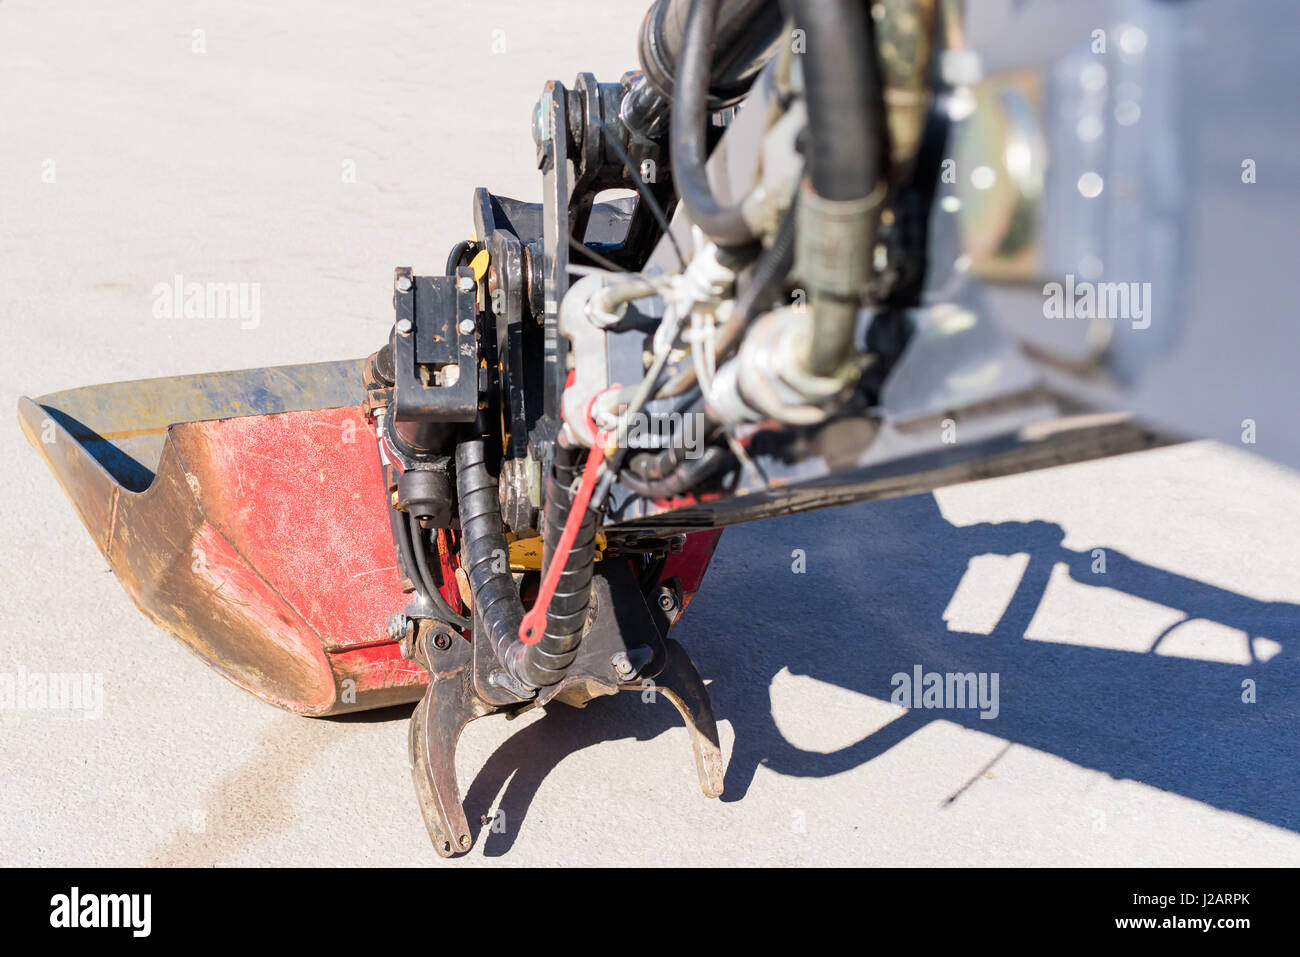 Close up of tractor scoop and grip claw. - Stock Image